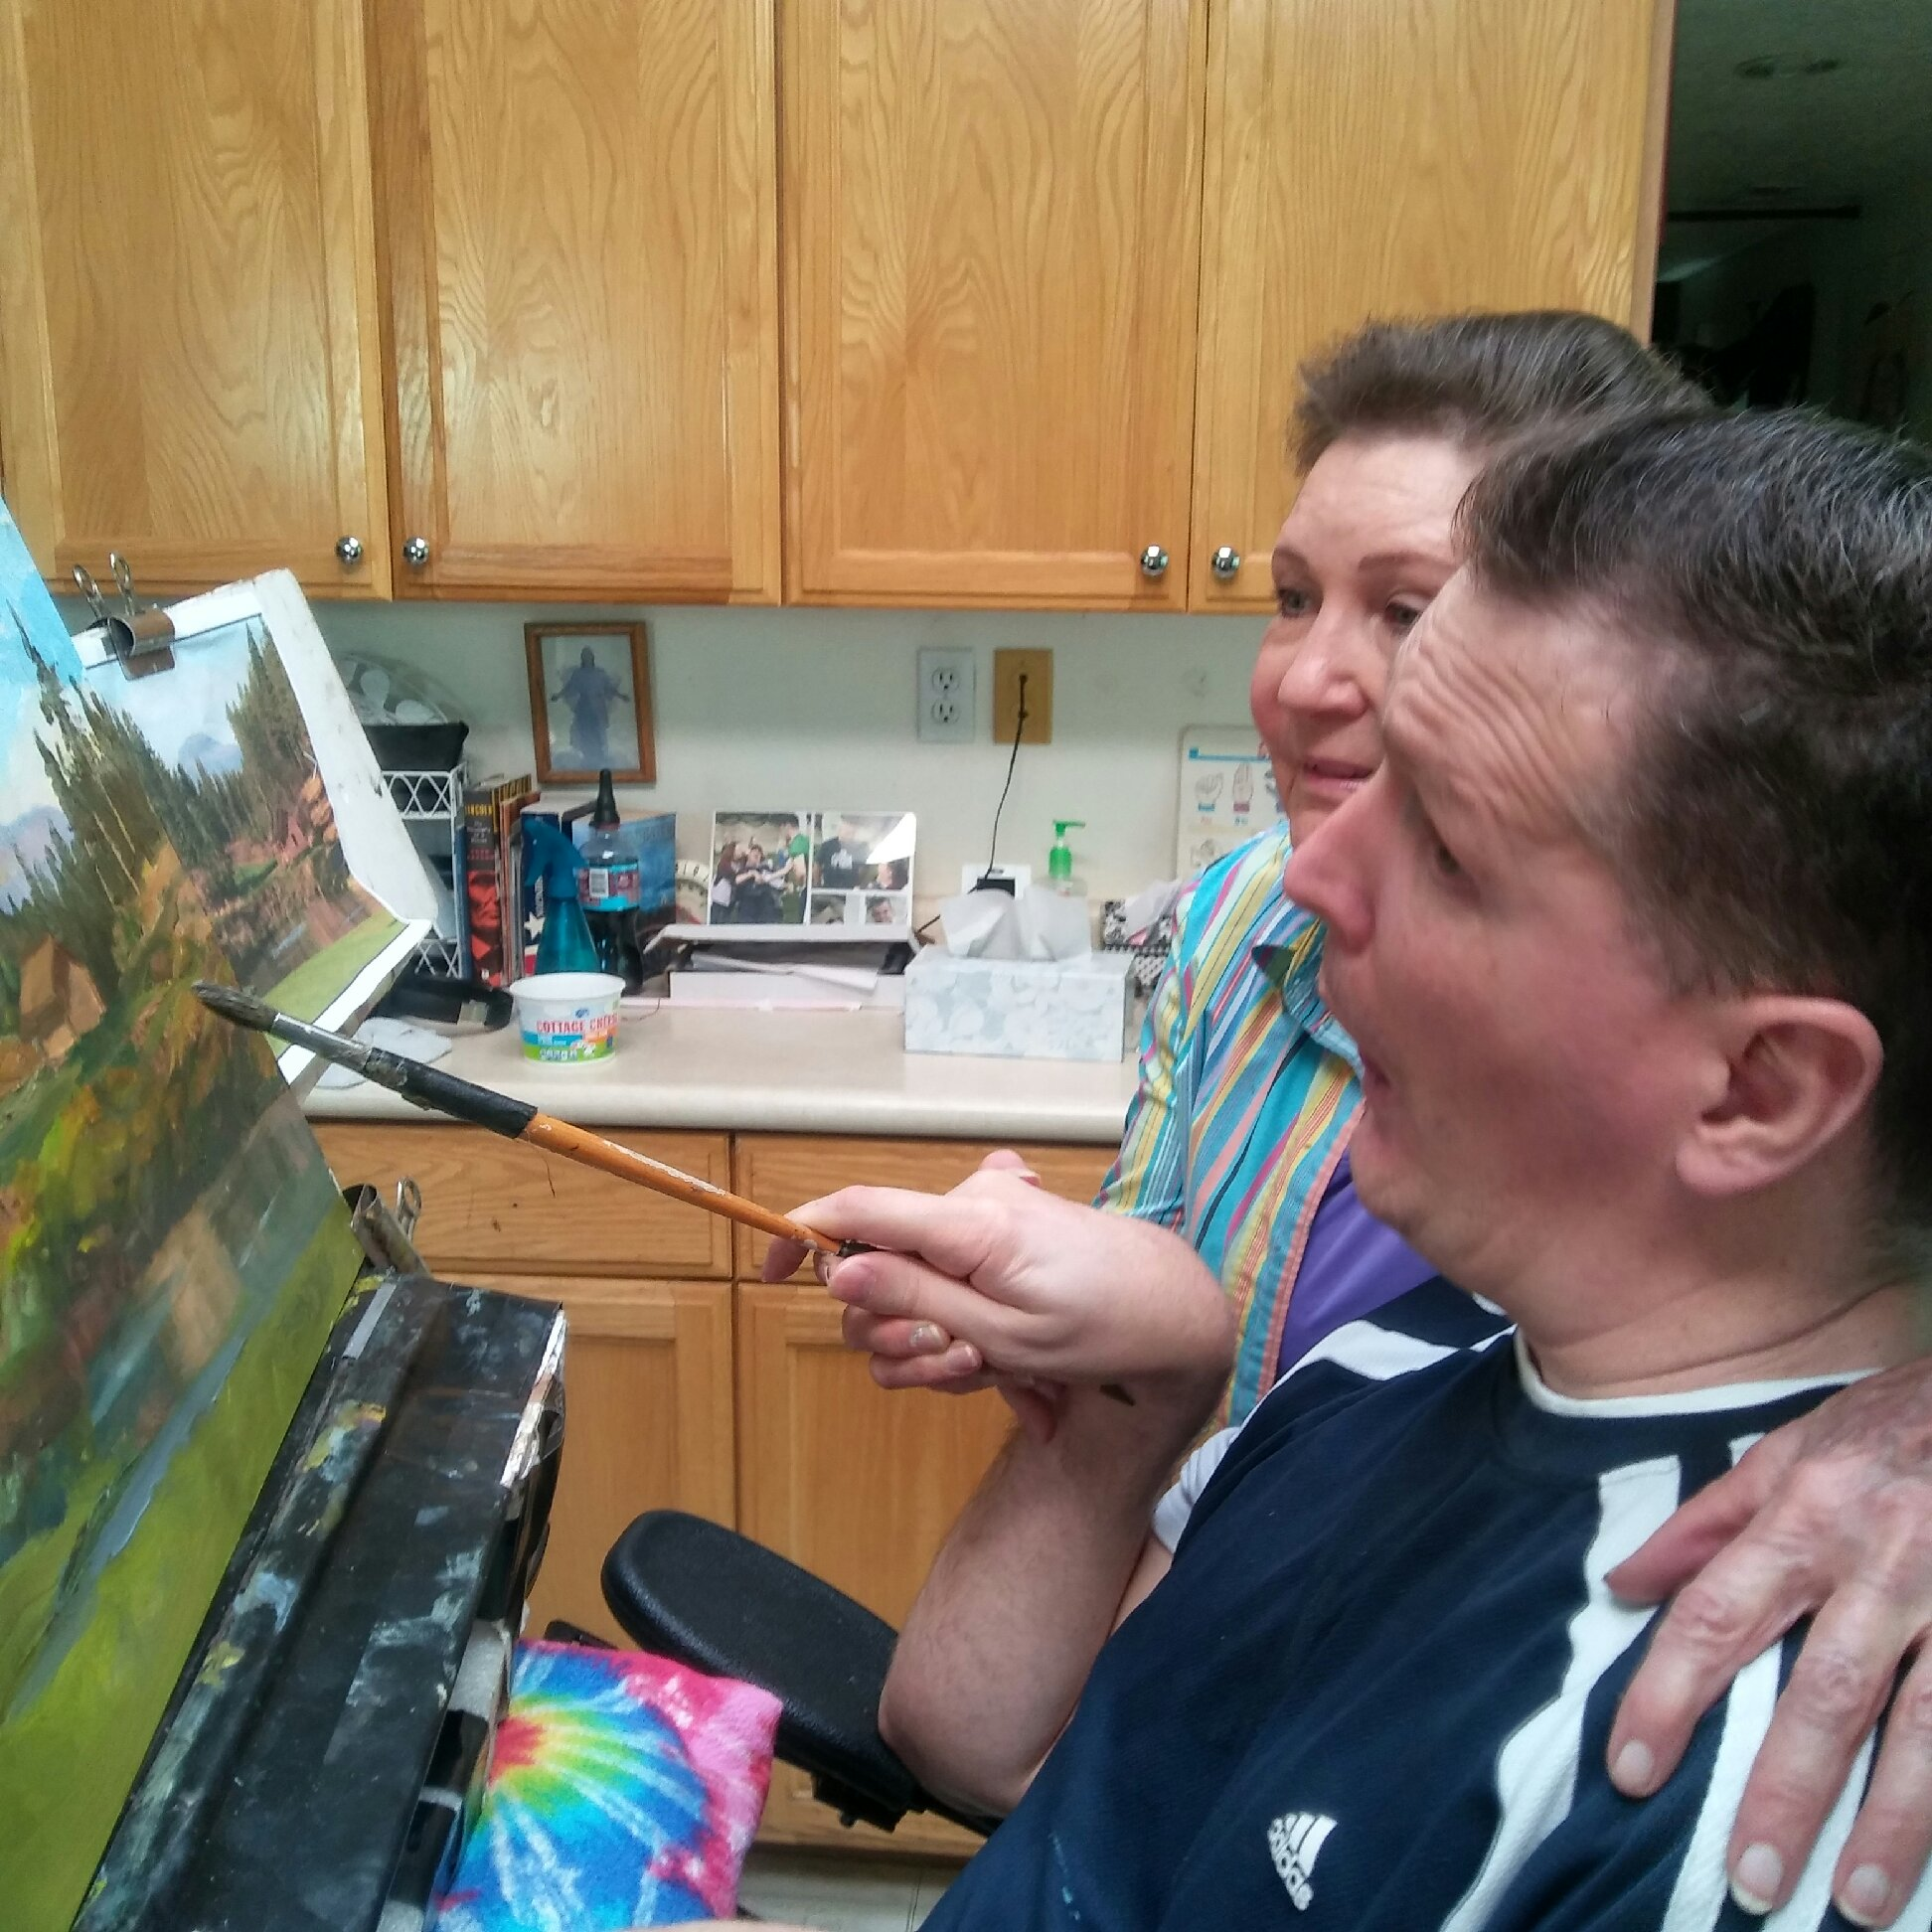 Orin Voorheis paints with his art teacher and friend, Carol Harding. More than 20 years after being shot in the head on his mission, Voorheis is living a happy life surrounded by family and friends.